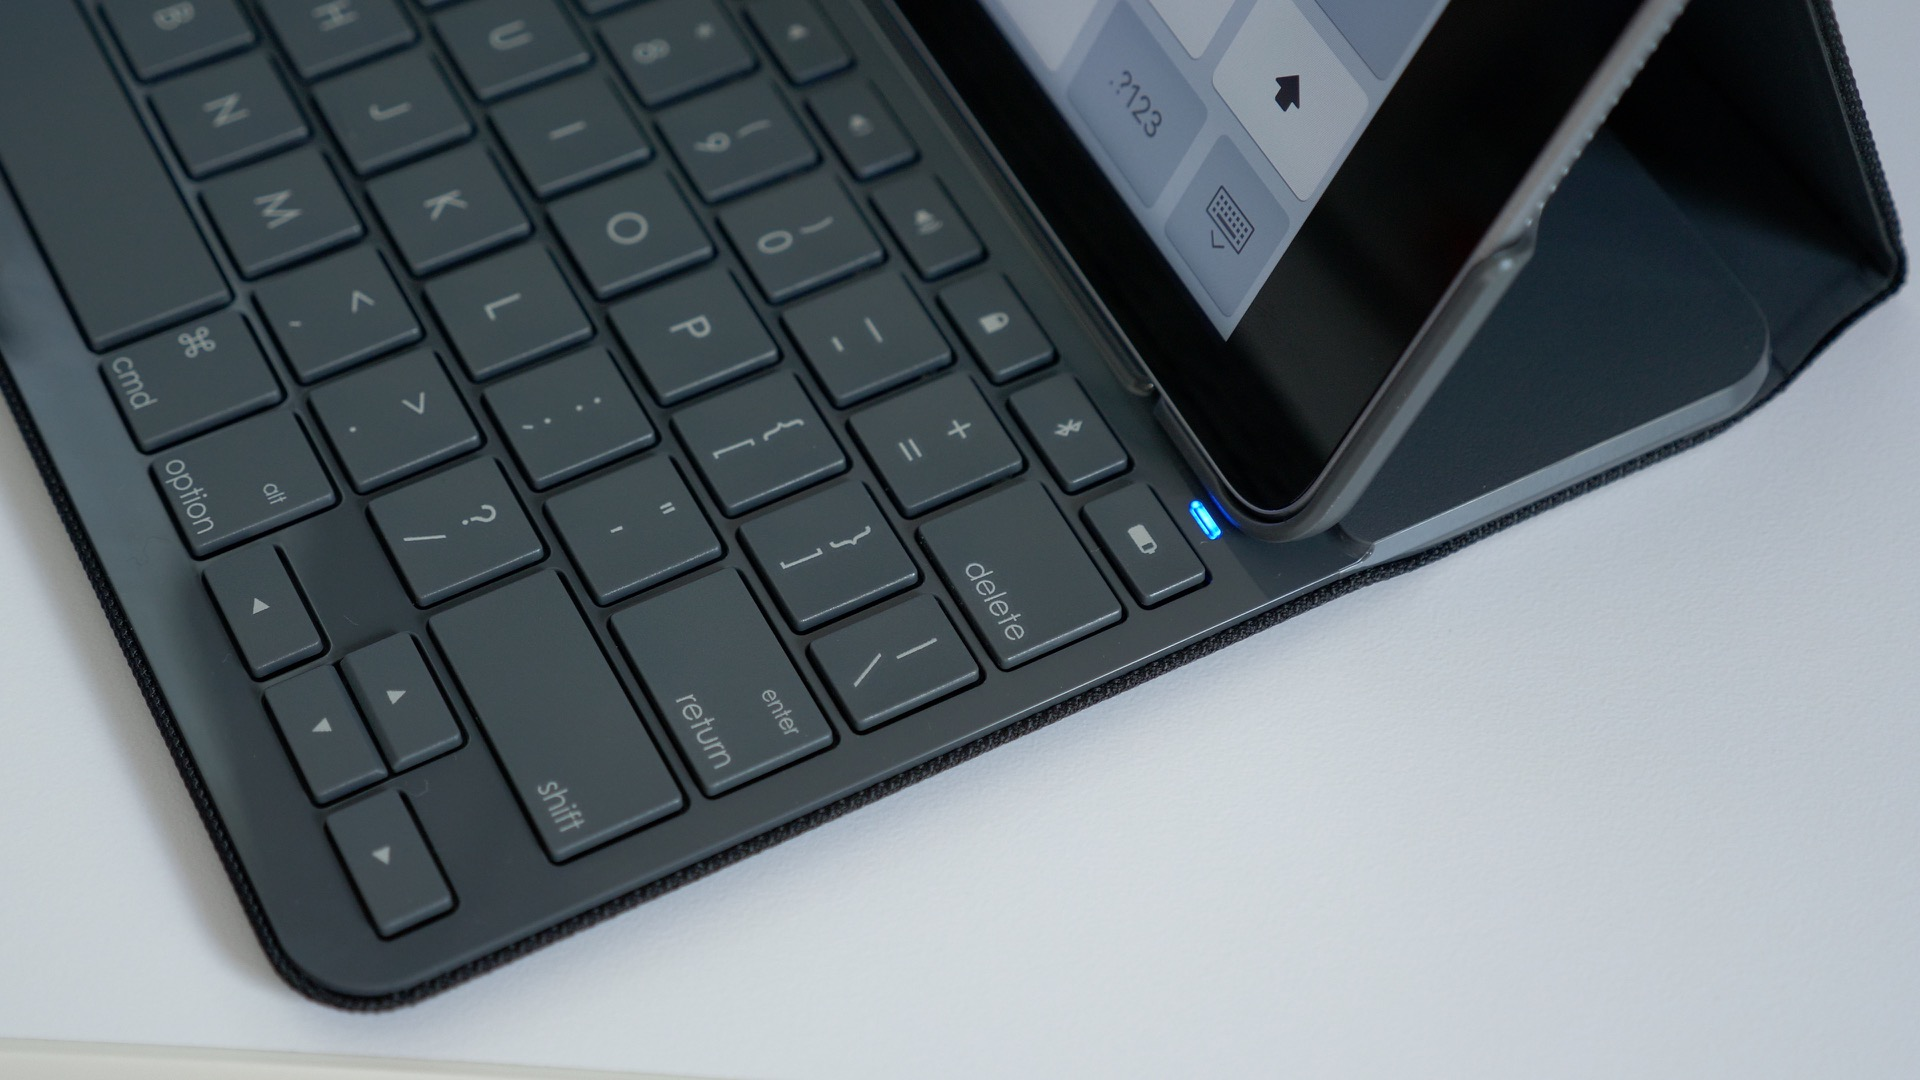 4c4857a48d3 Hands-on: Logitech's Slim Folio keyboard case for 2017 iPad never ...